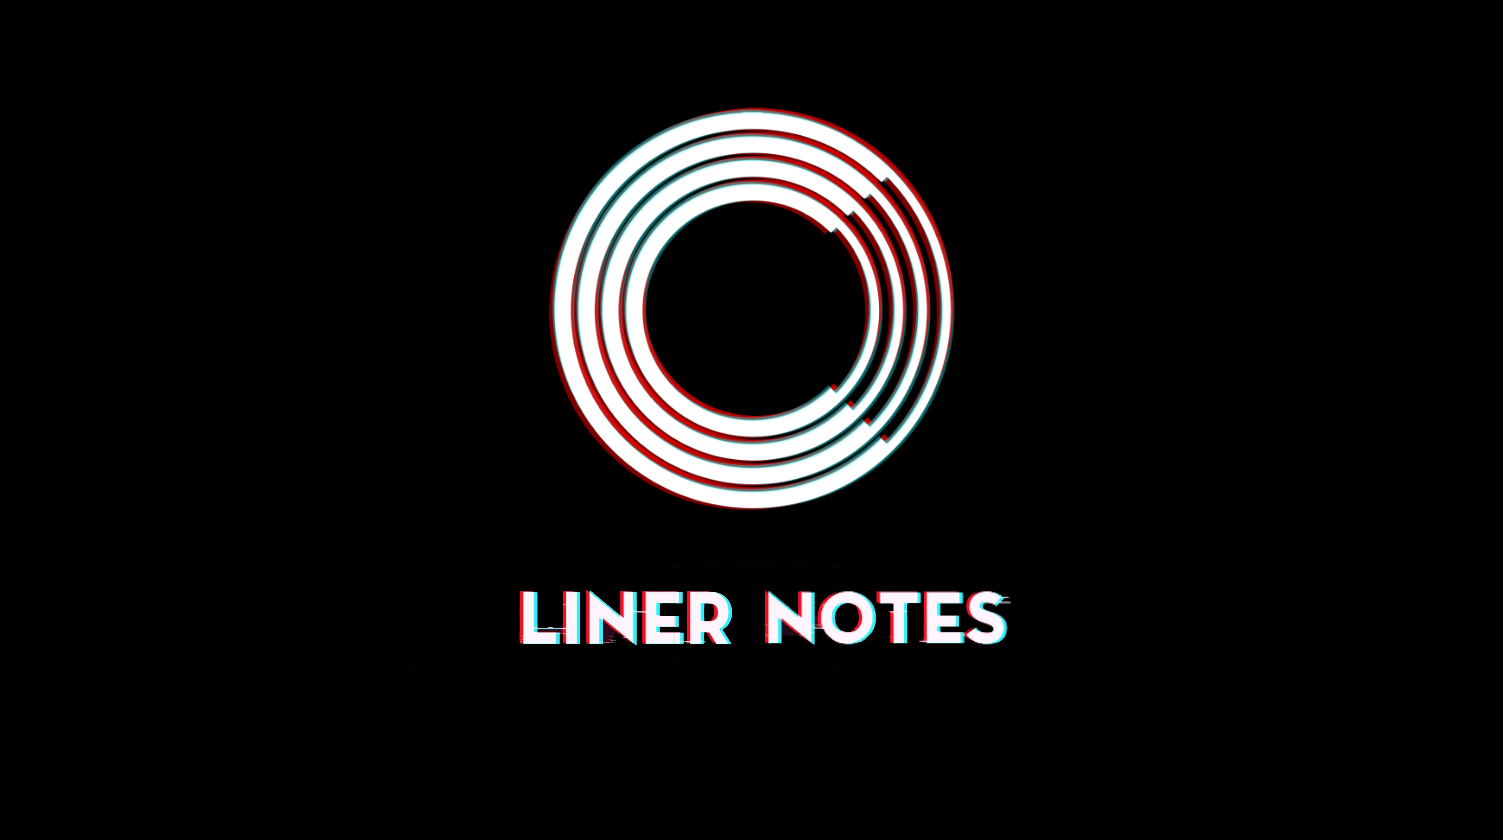 liner-notes